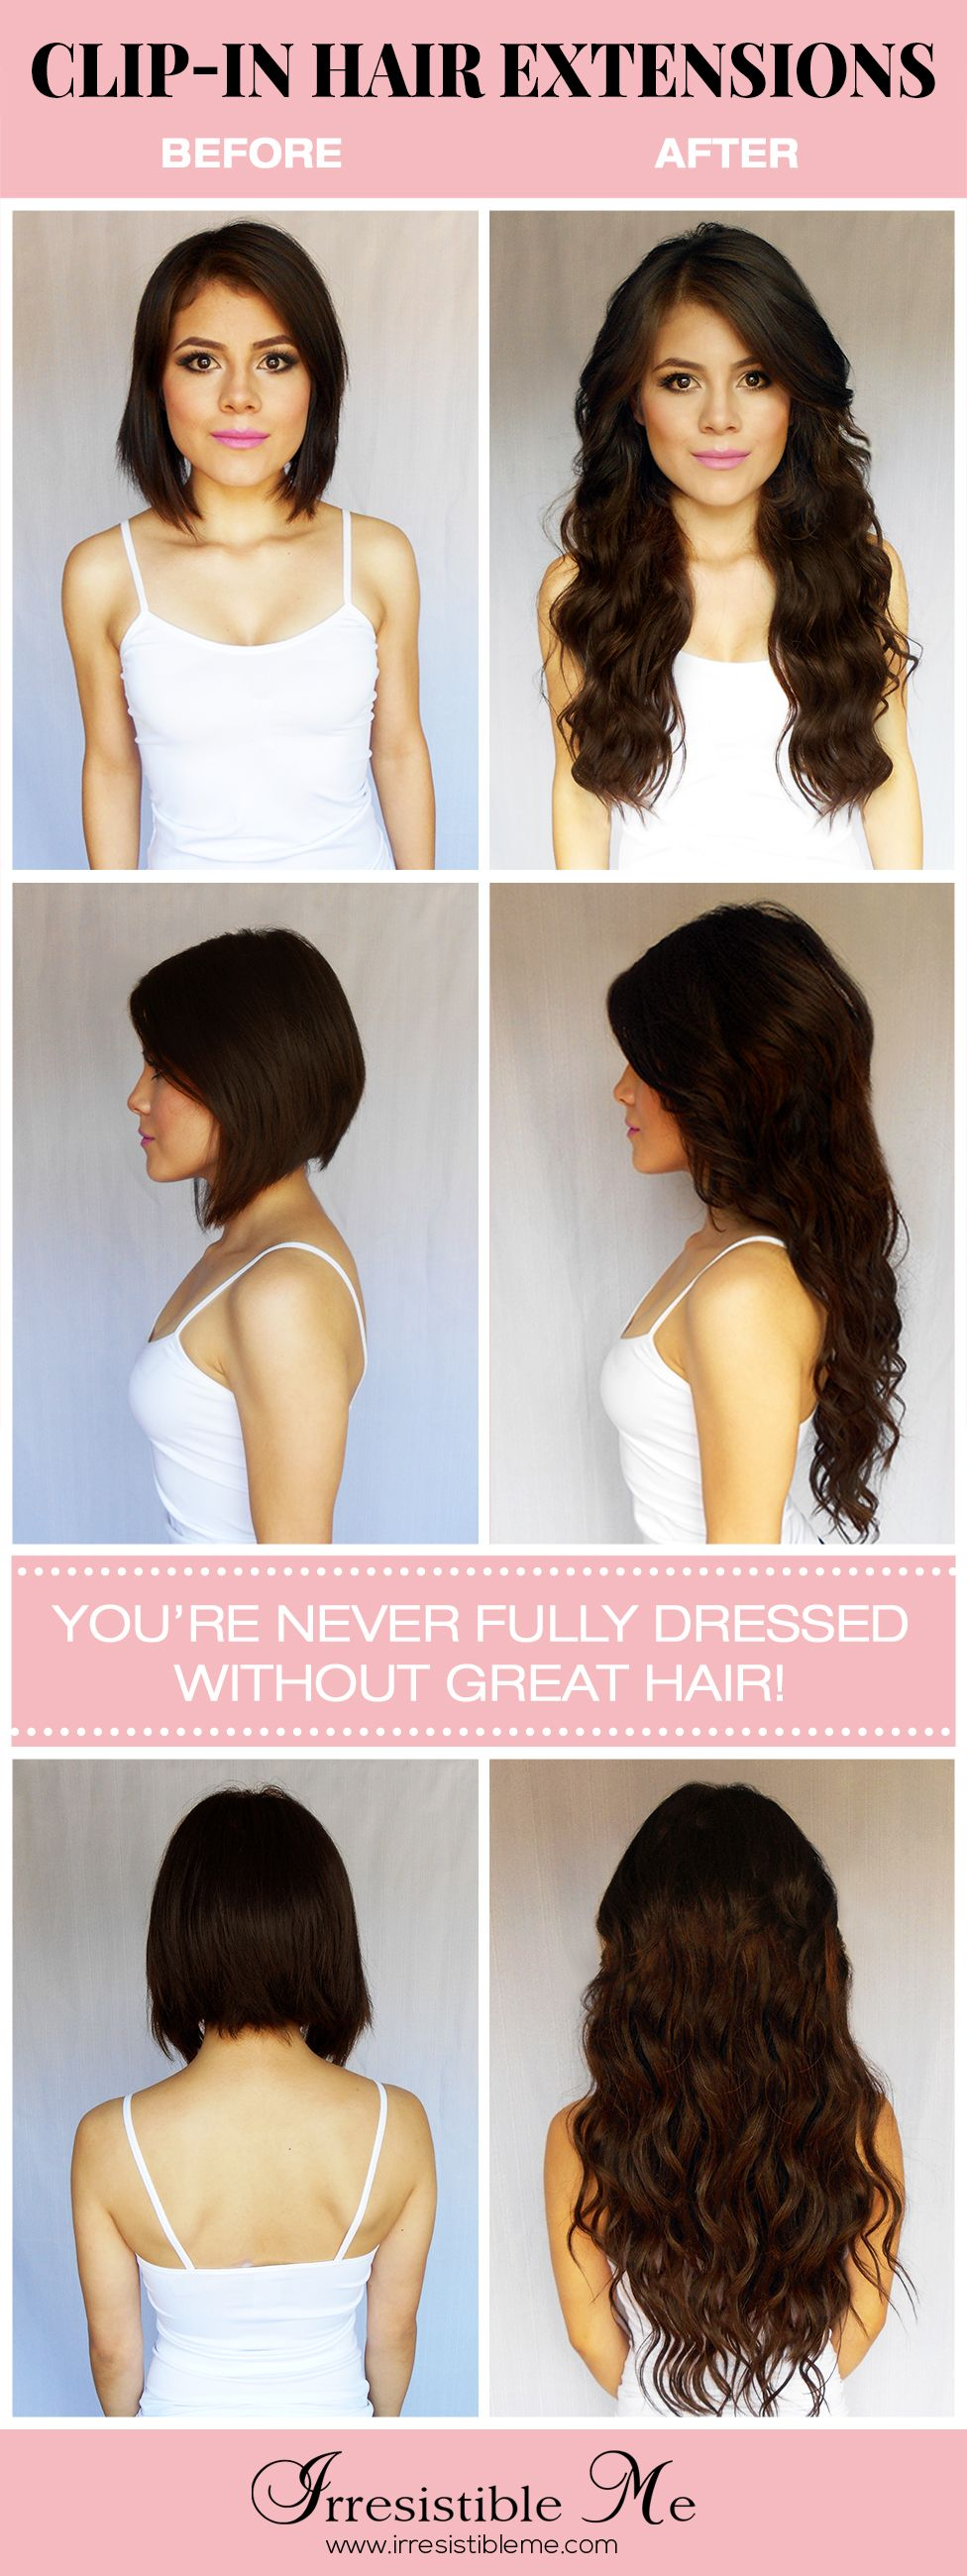 Clip in hair extensions tutorial faqs hair extensions get long hair in less than 5 minutes with irresistible me human remy clip in hair extensions the before and after change is totally awesome and nobody will pmusecretfo Gallery